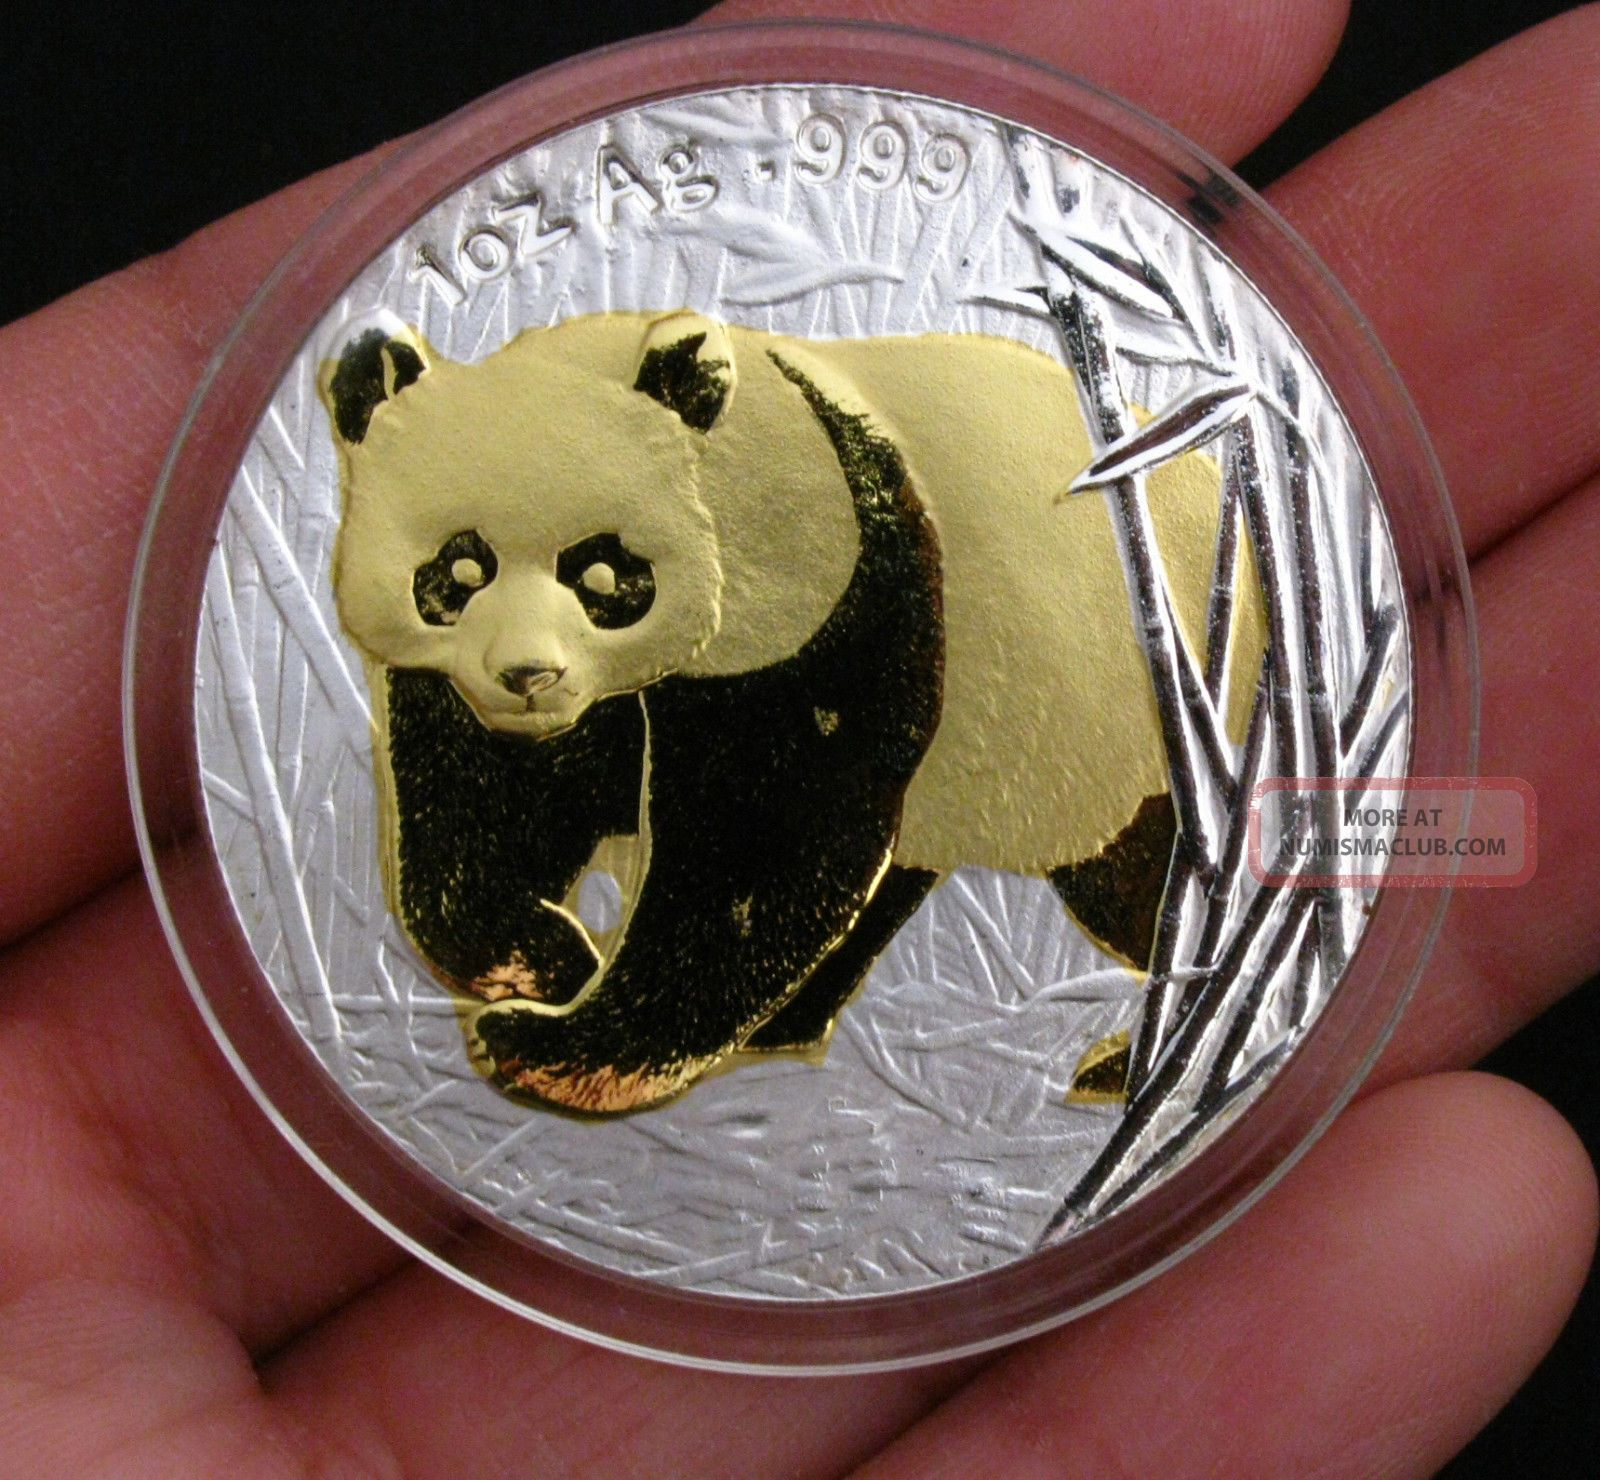 2001 Chinese Giant Panda 24k Gold & Silver Commemorative Medal Bimetallic Coin Coins: World photo